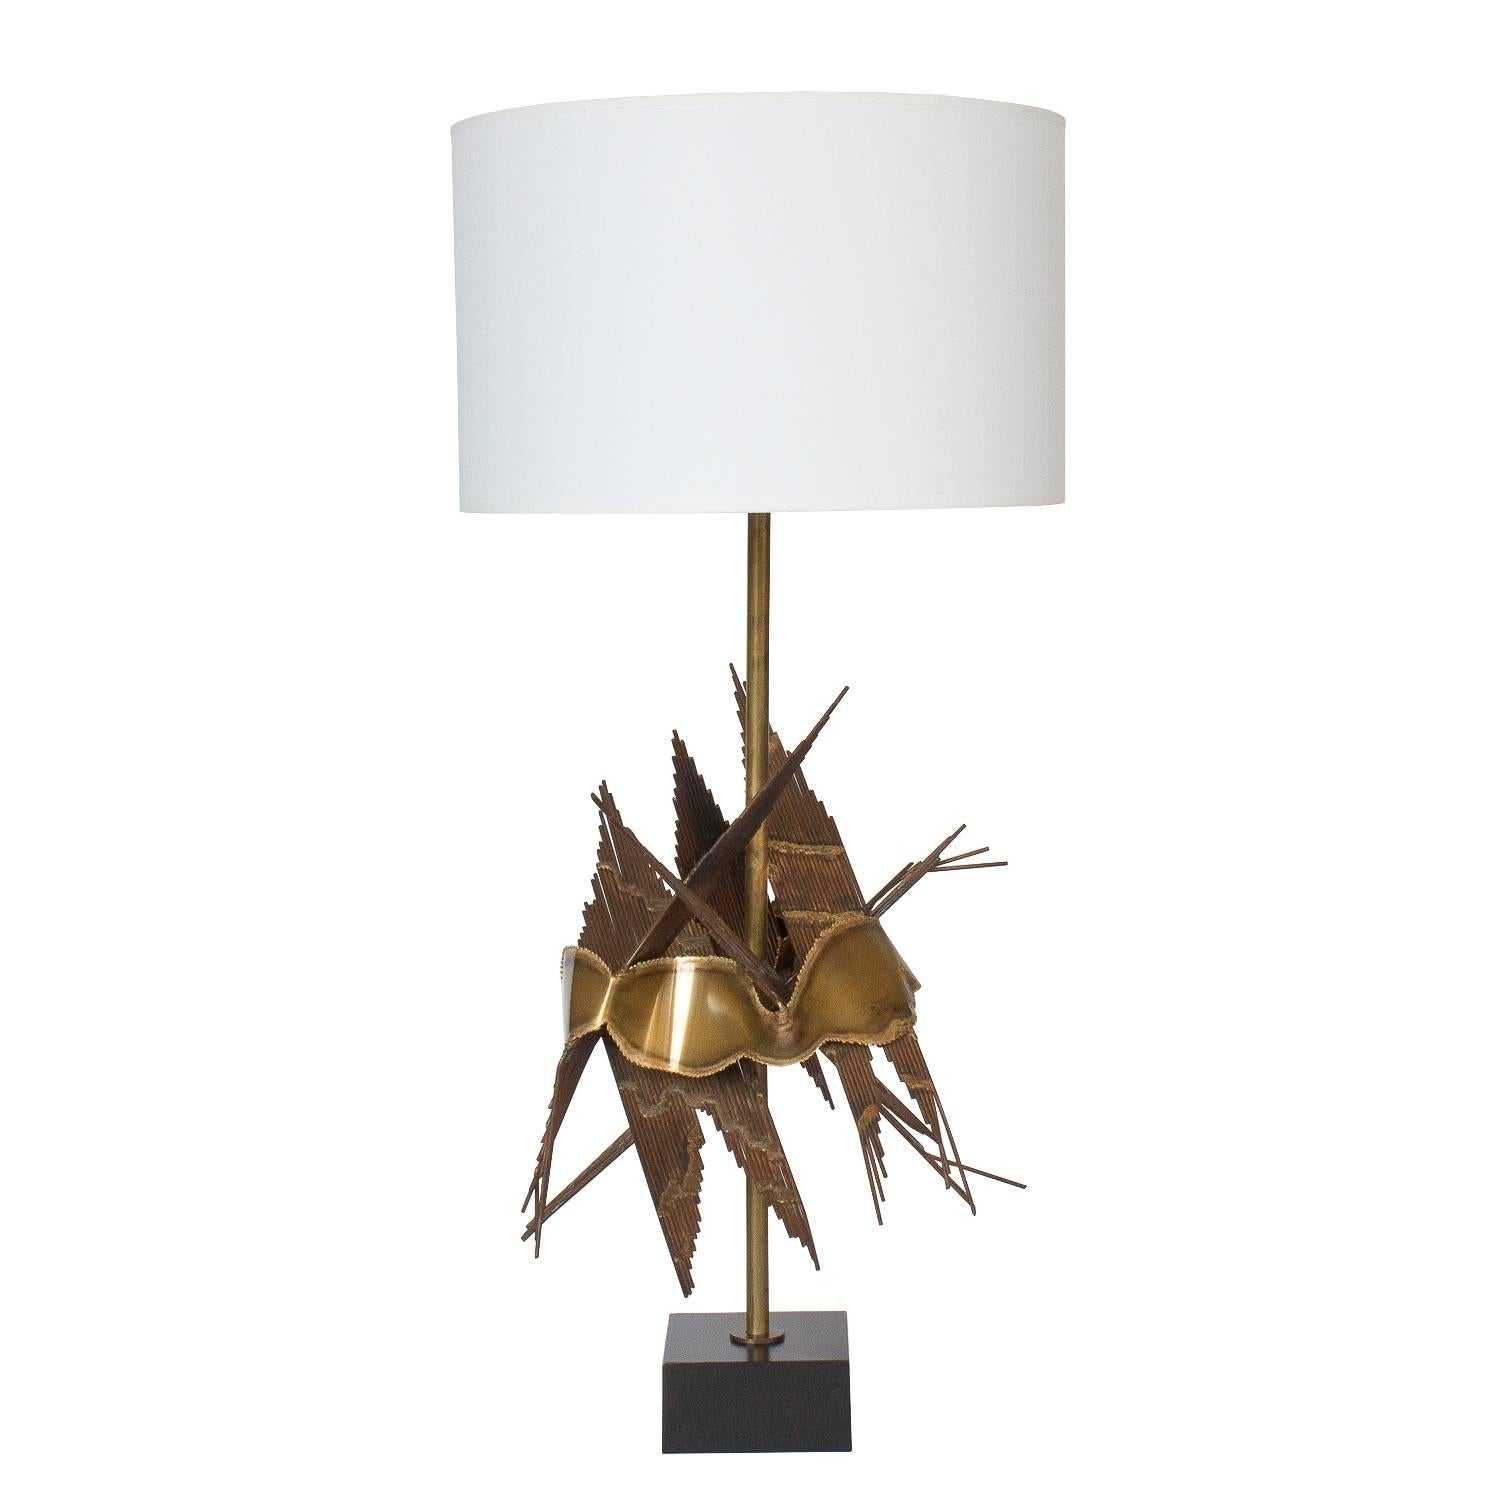 Paul Hanson Etched Glass Cylinder Brass Table Lamp At 1stdibs